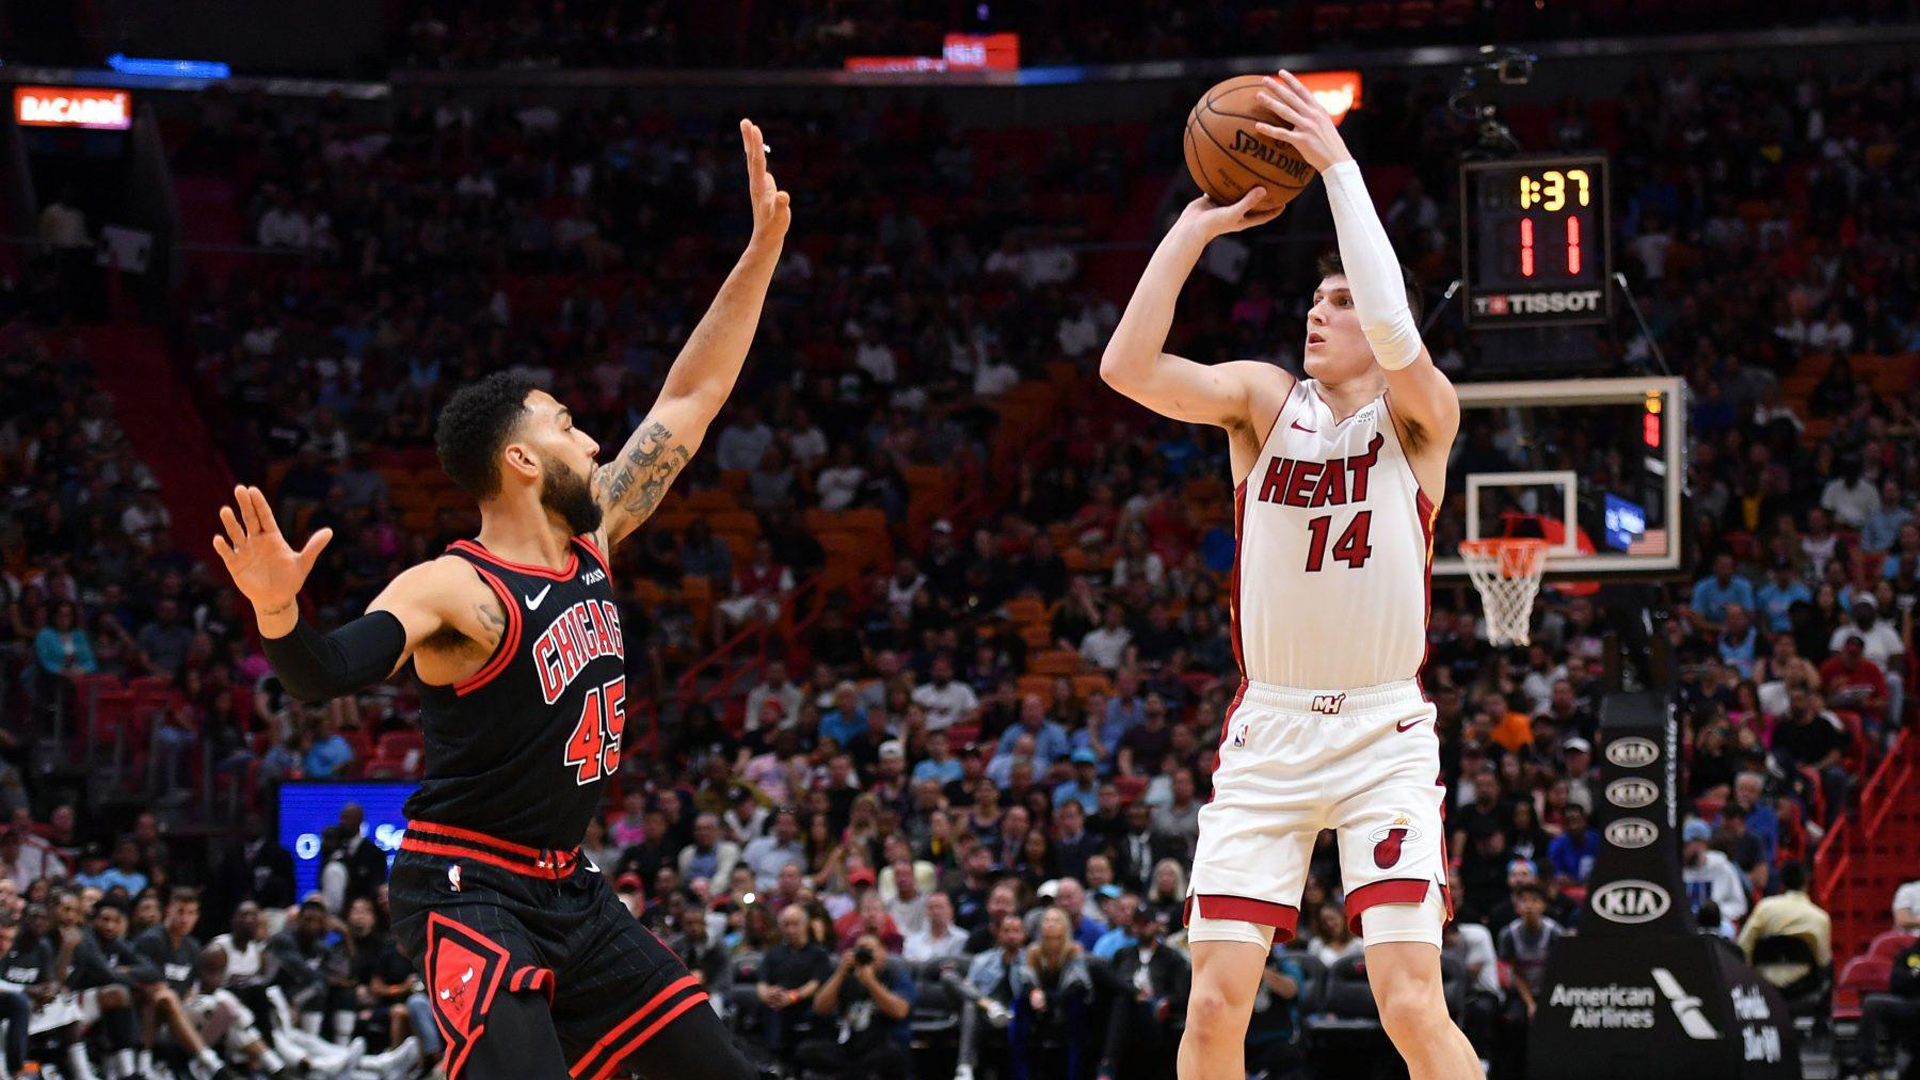 Download Tyler Herro Is Trying To Put Ball To Basket From Long Distance Wearing White Dress Hd Sports